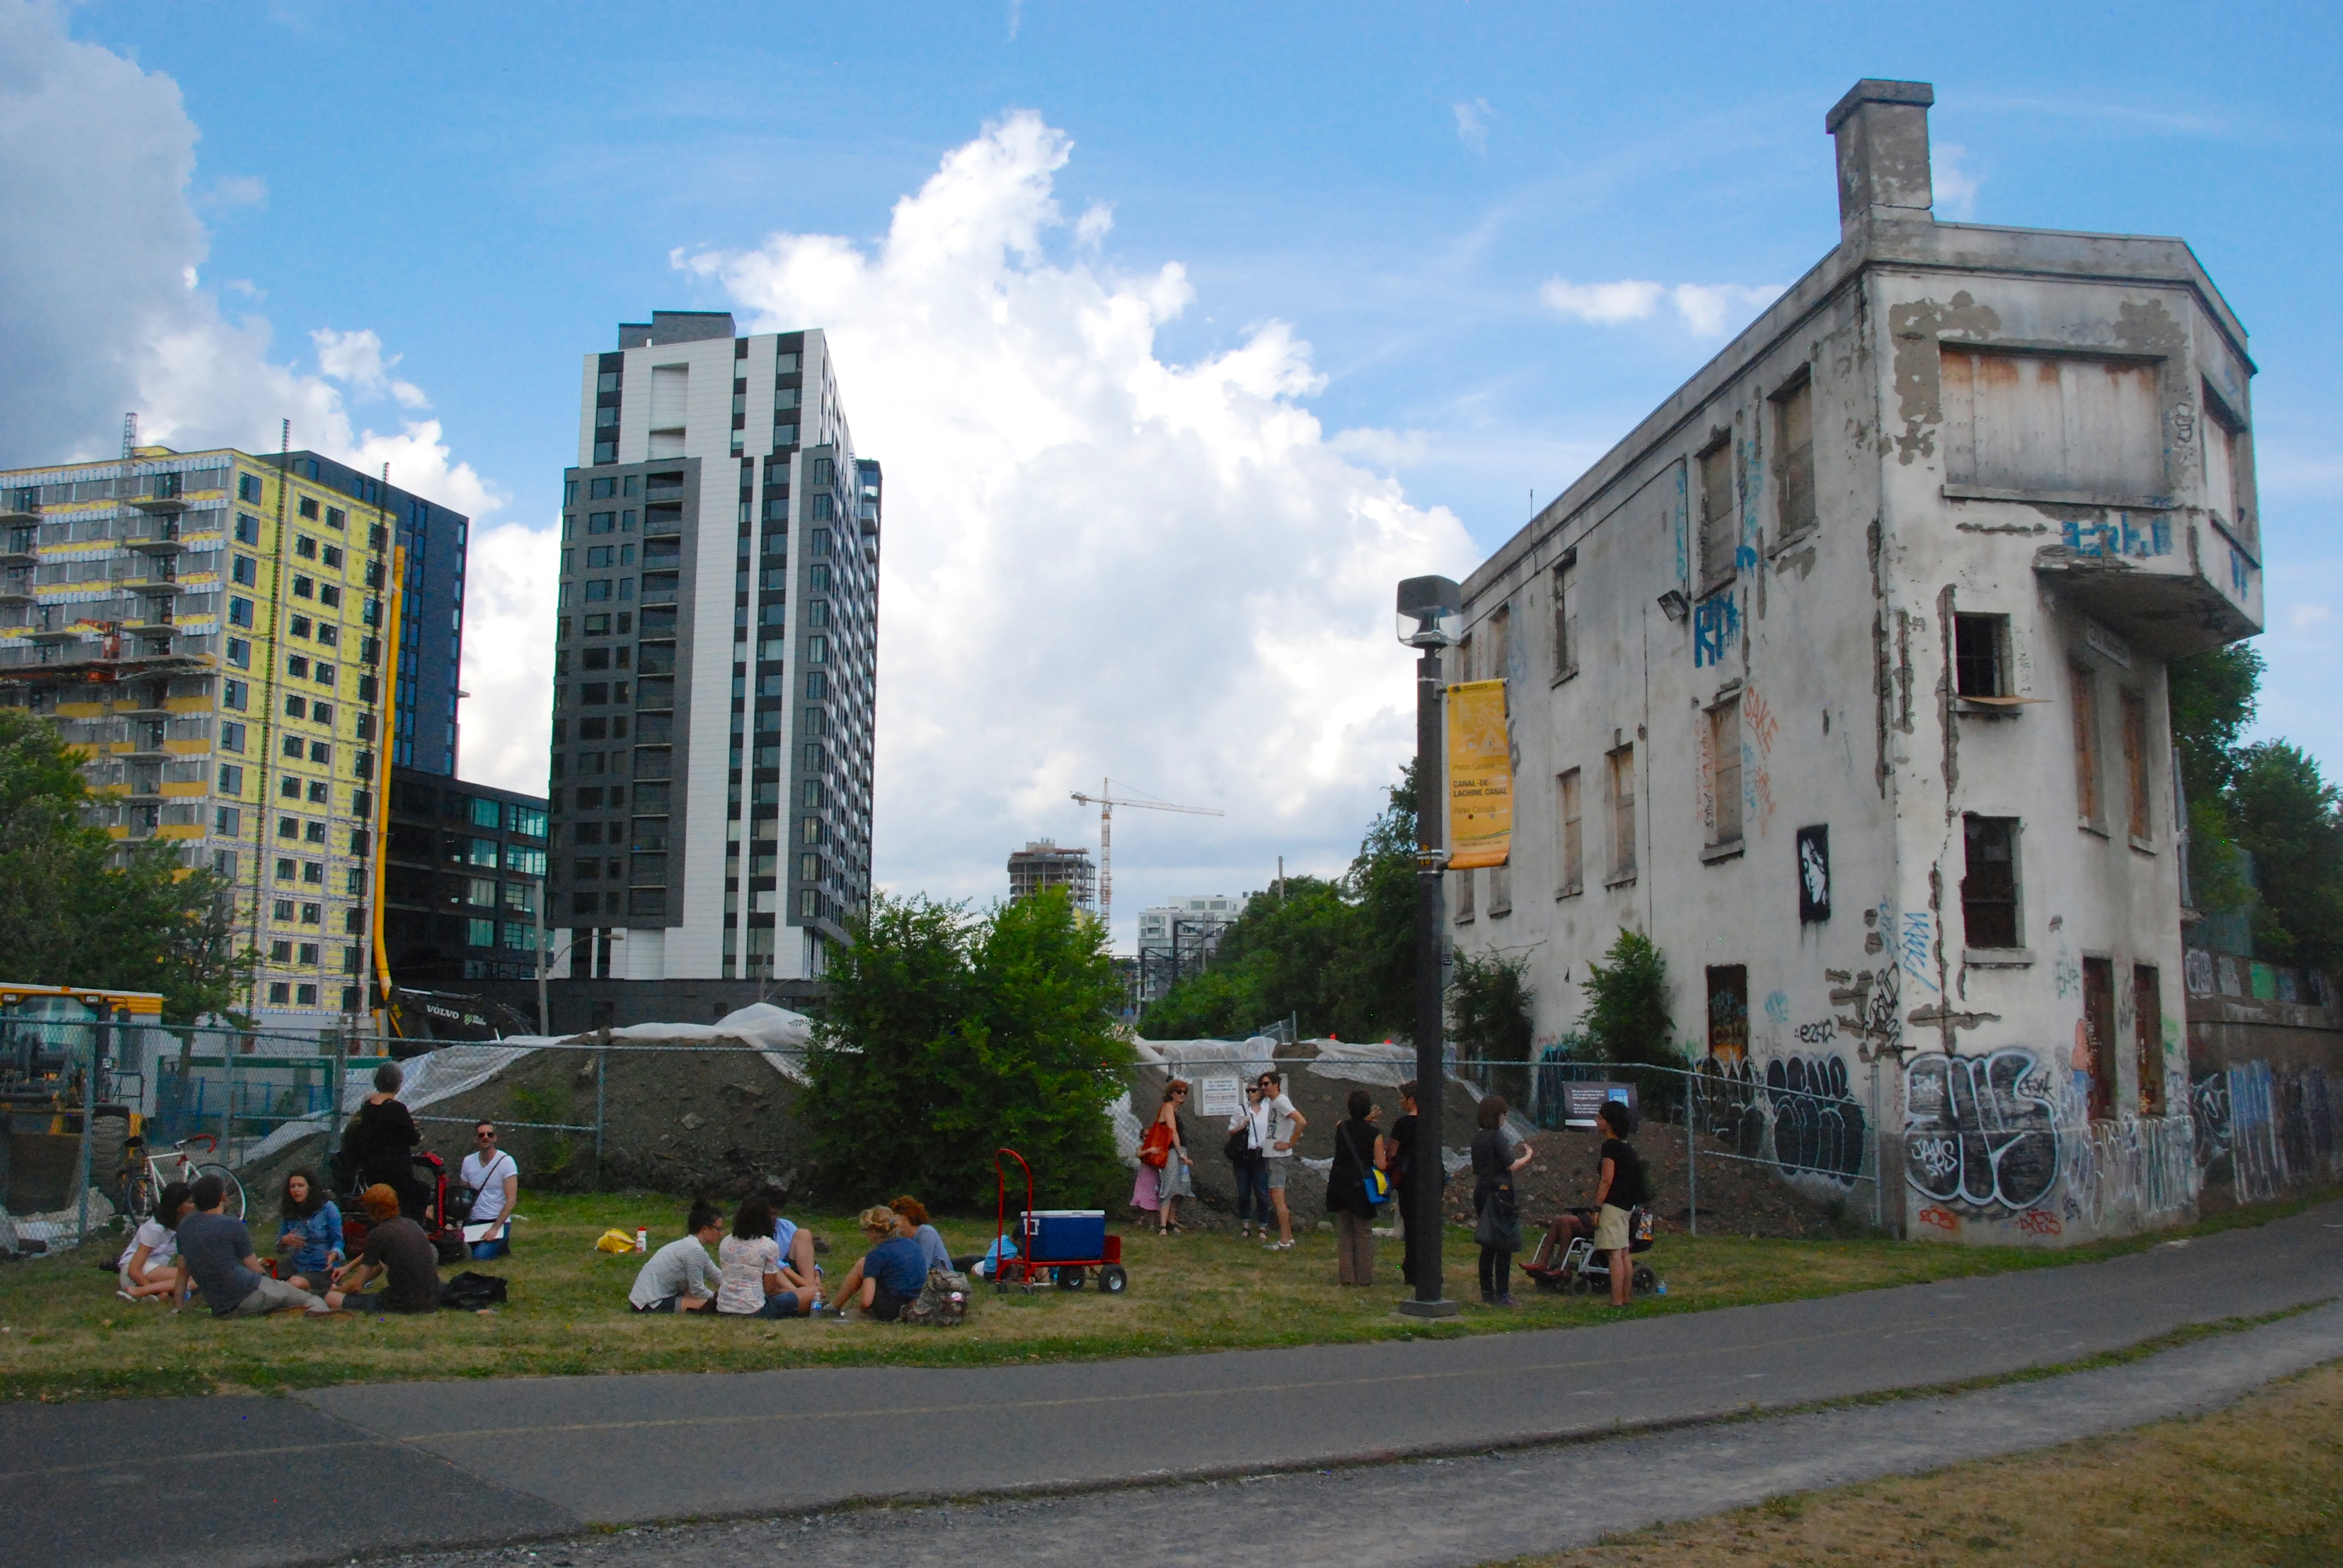 [Image 12 - Points de vue's urban lab #2: Participants seated on the grass adjacent to the Wellington tower. Photo: C. Bédard]